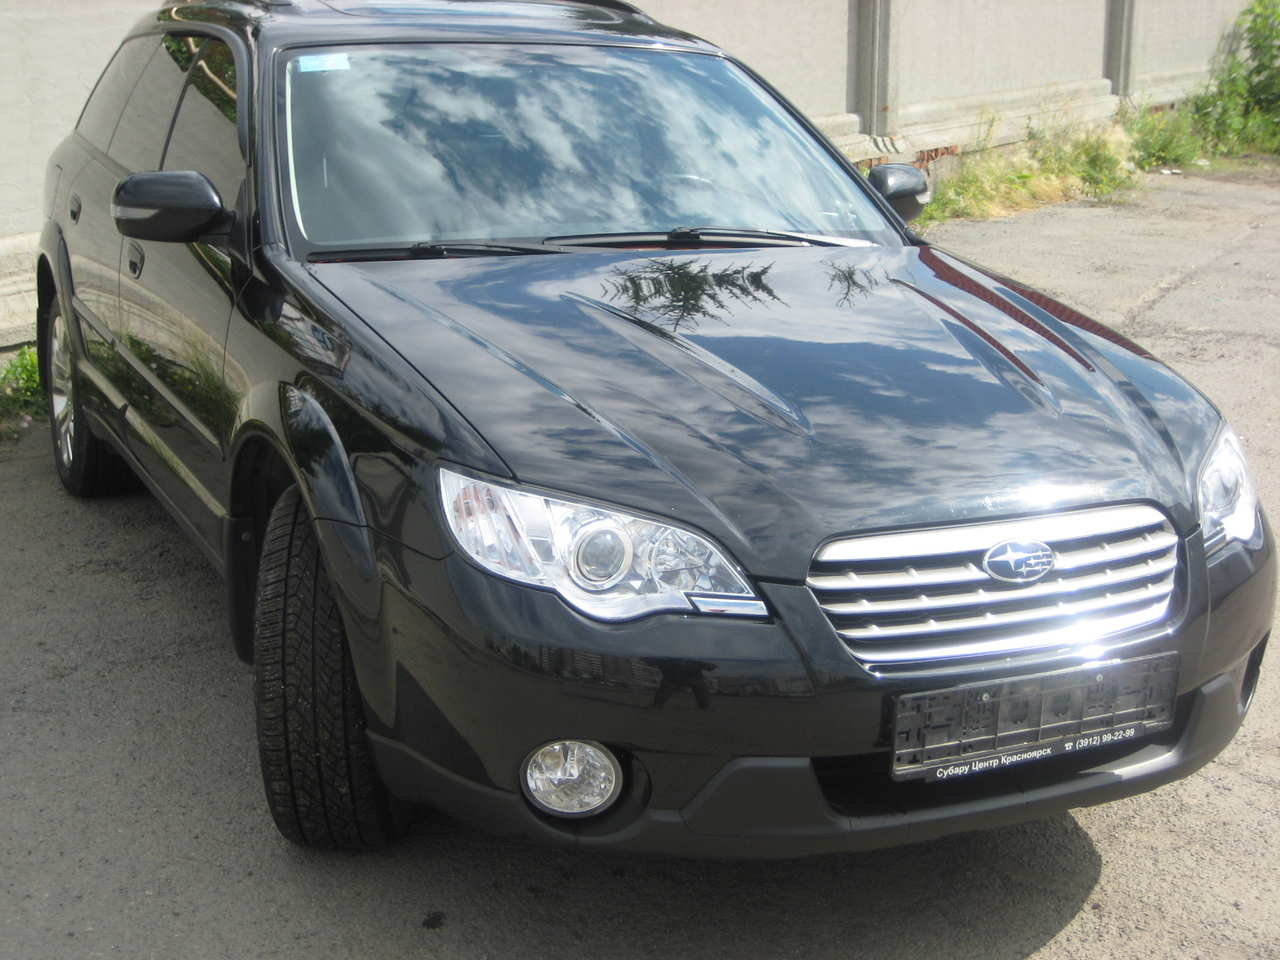 2008 subaru outback pics 3 0 gasoline automatic for sale. Black Bedroom Furniture Sets. Home Design Ideas